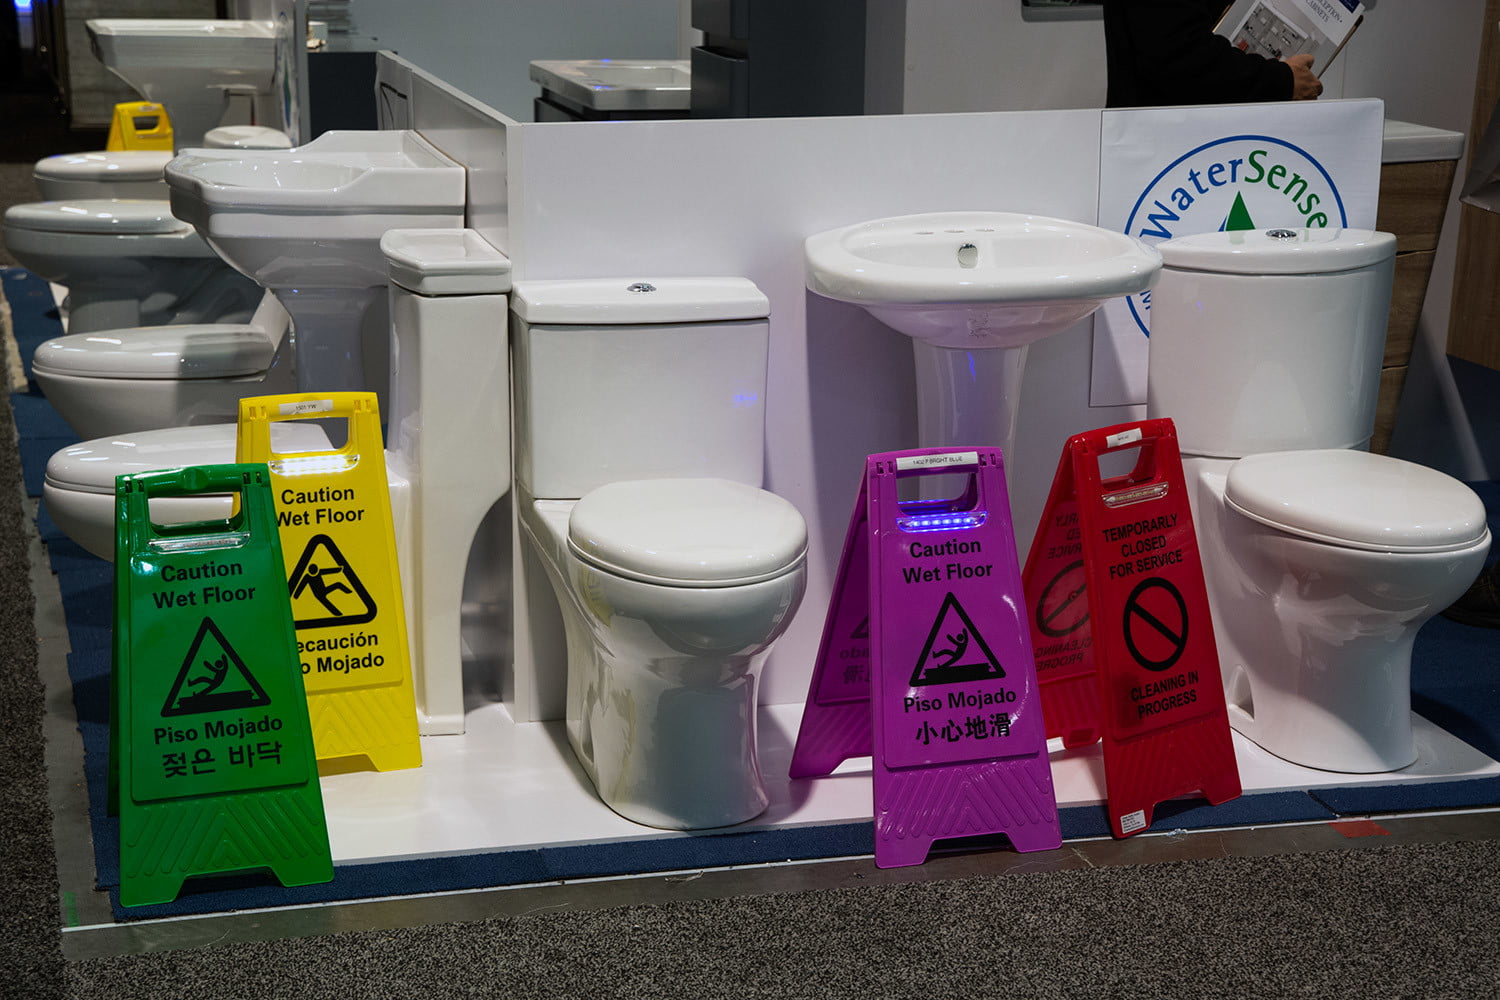 10 weirdest things 2016 international builders show chase safety supply led wet floor signs 0706